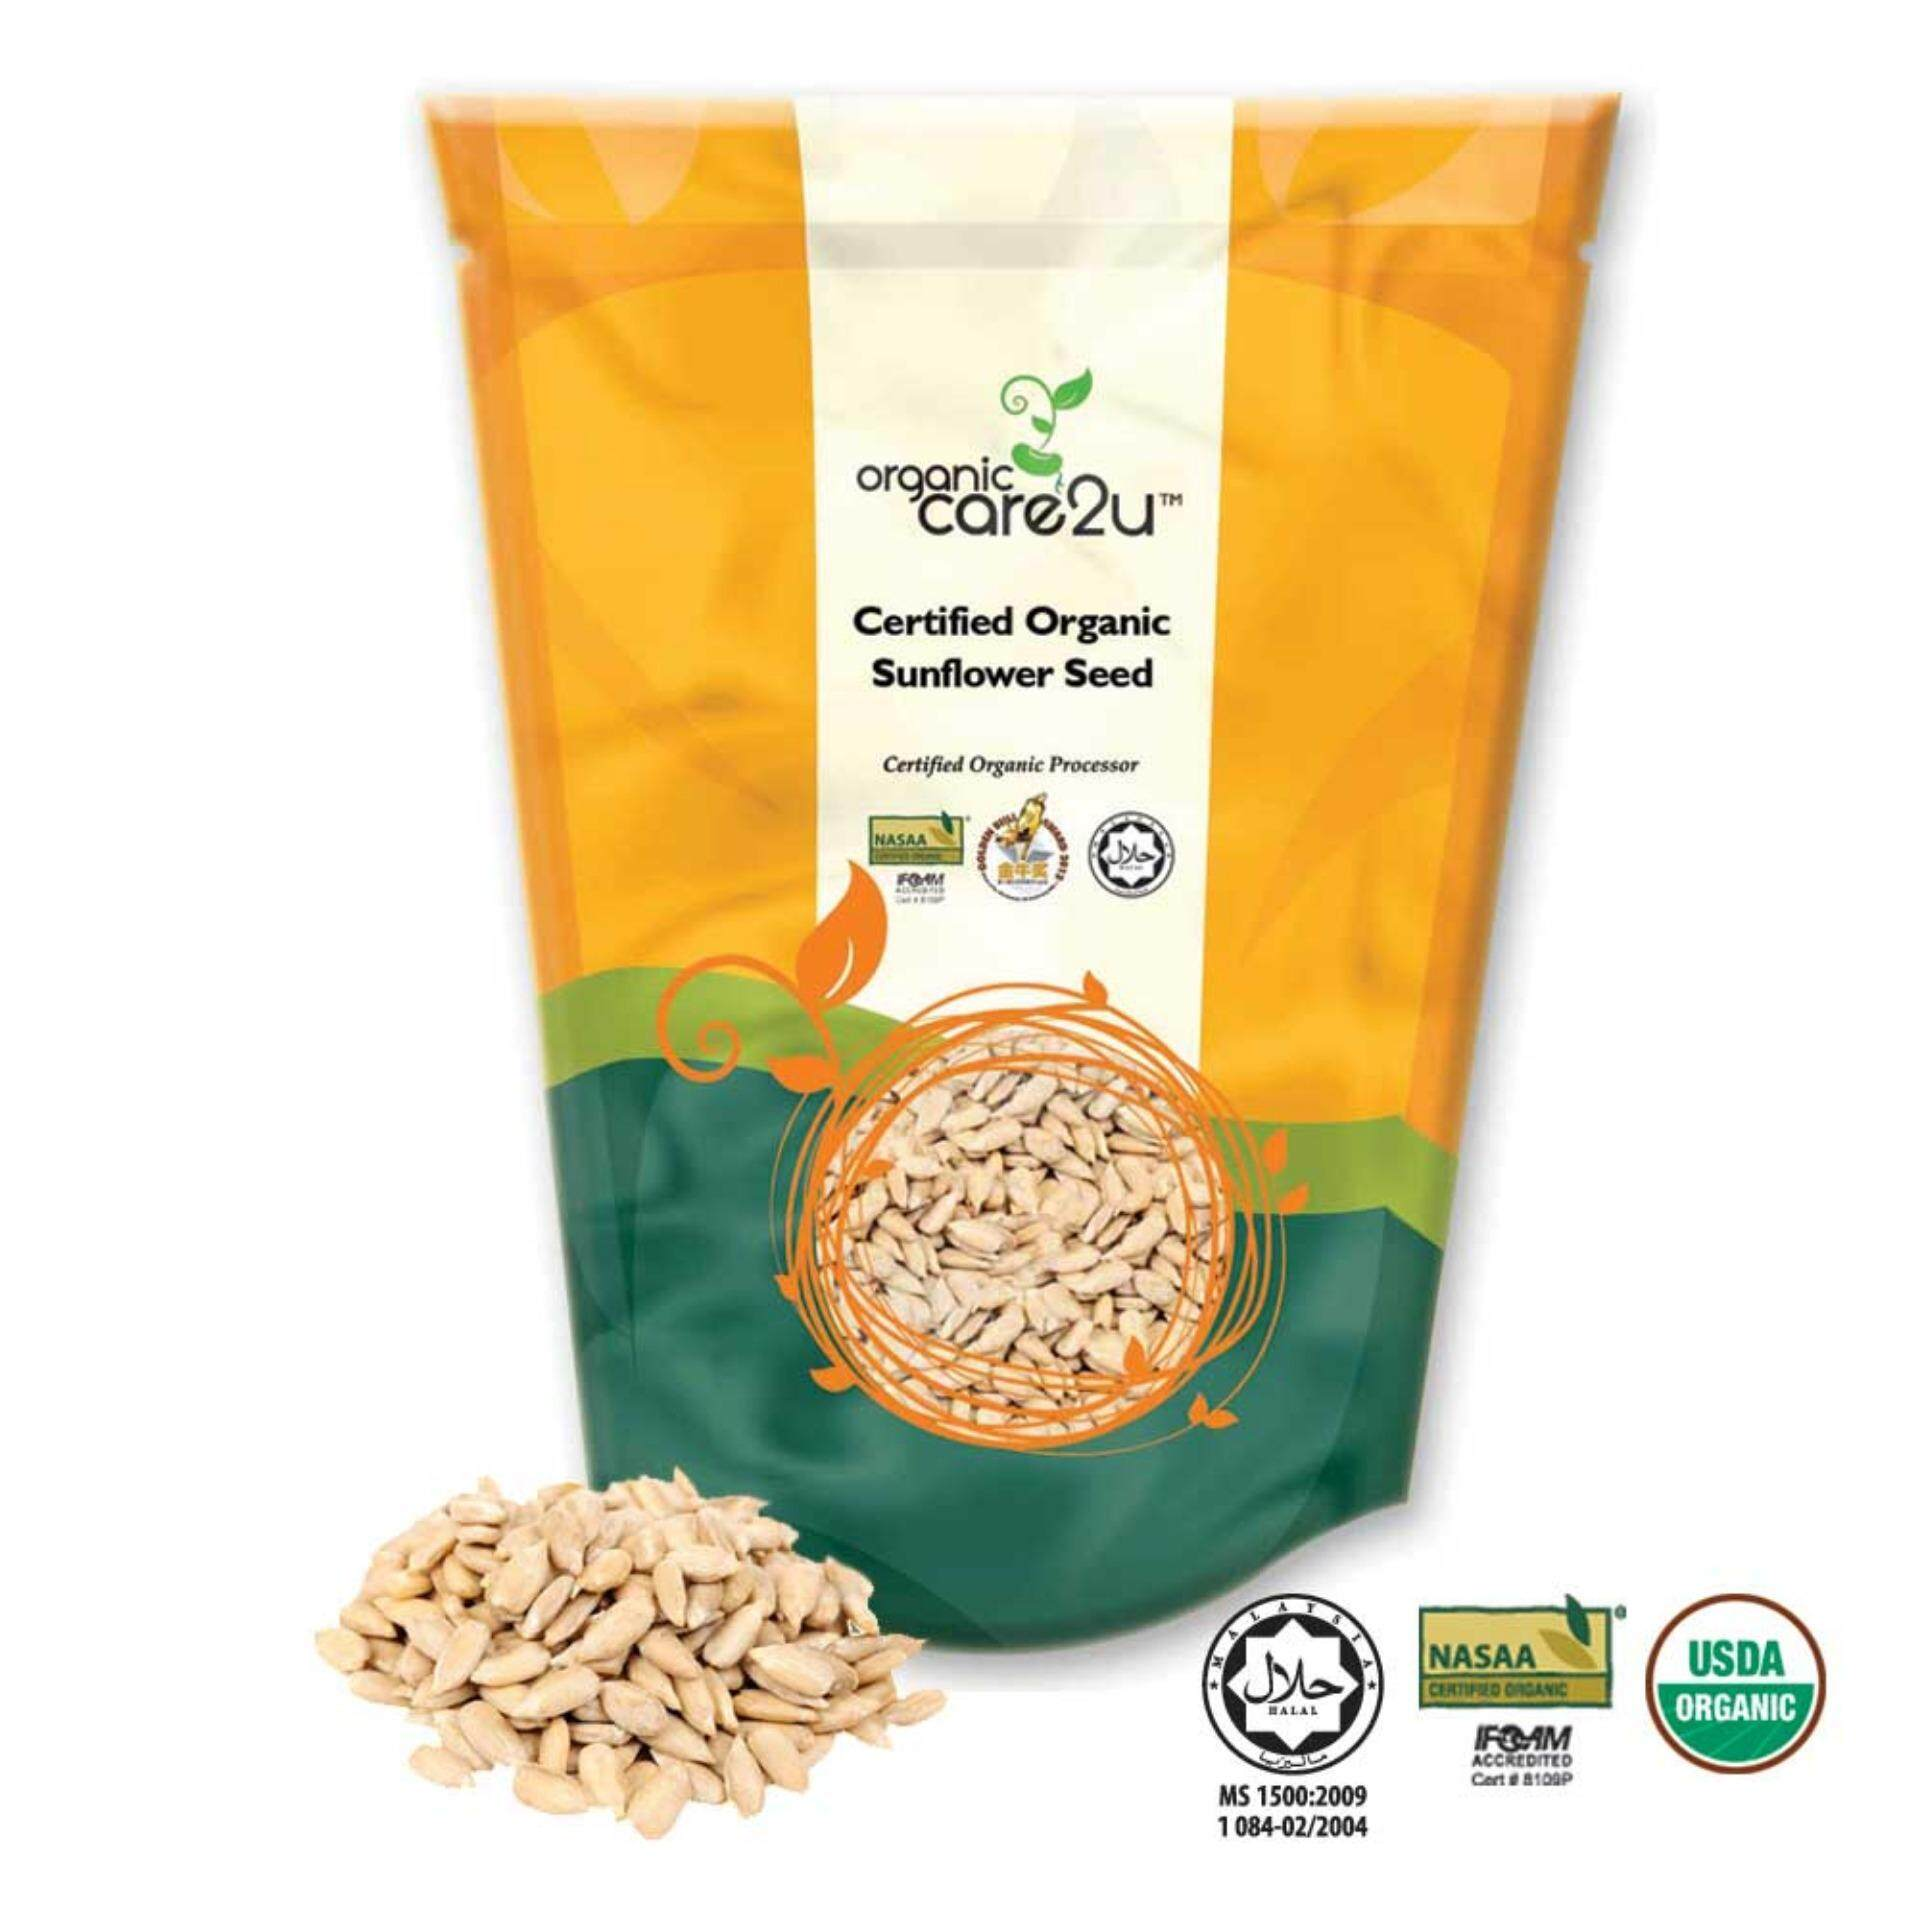 Organic Care2u Organic Sunflower Seed (200g)